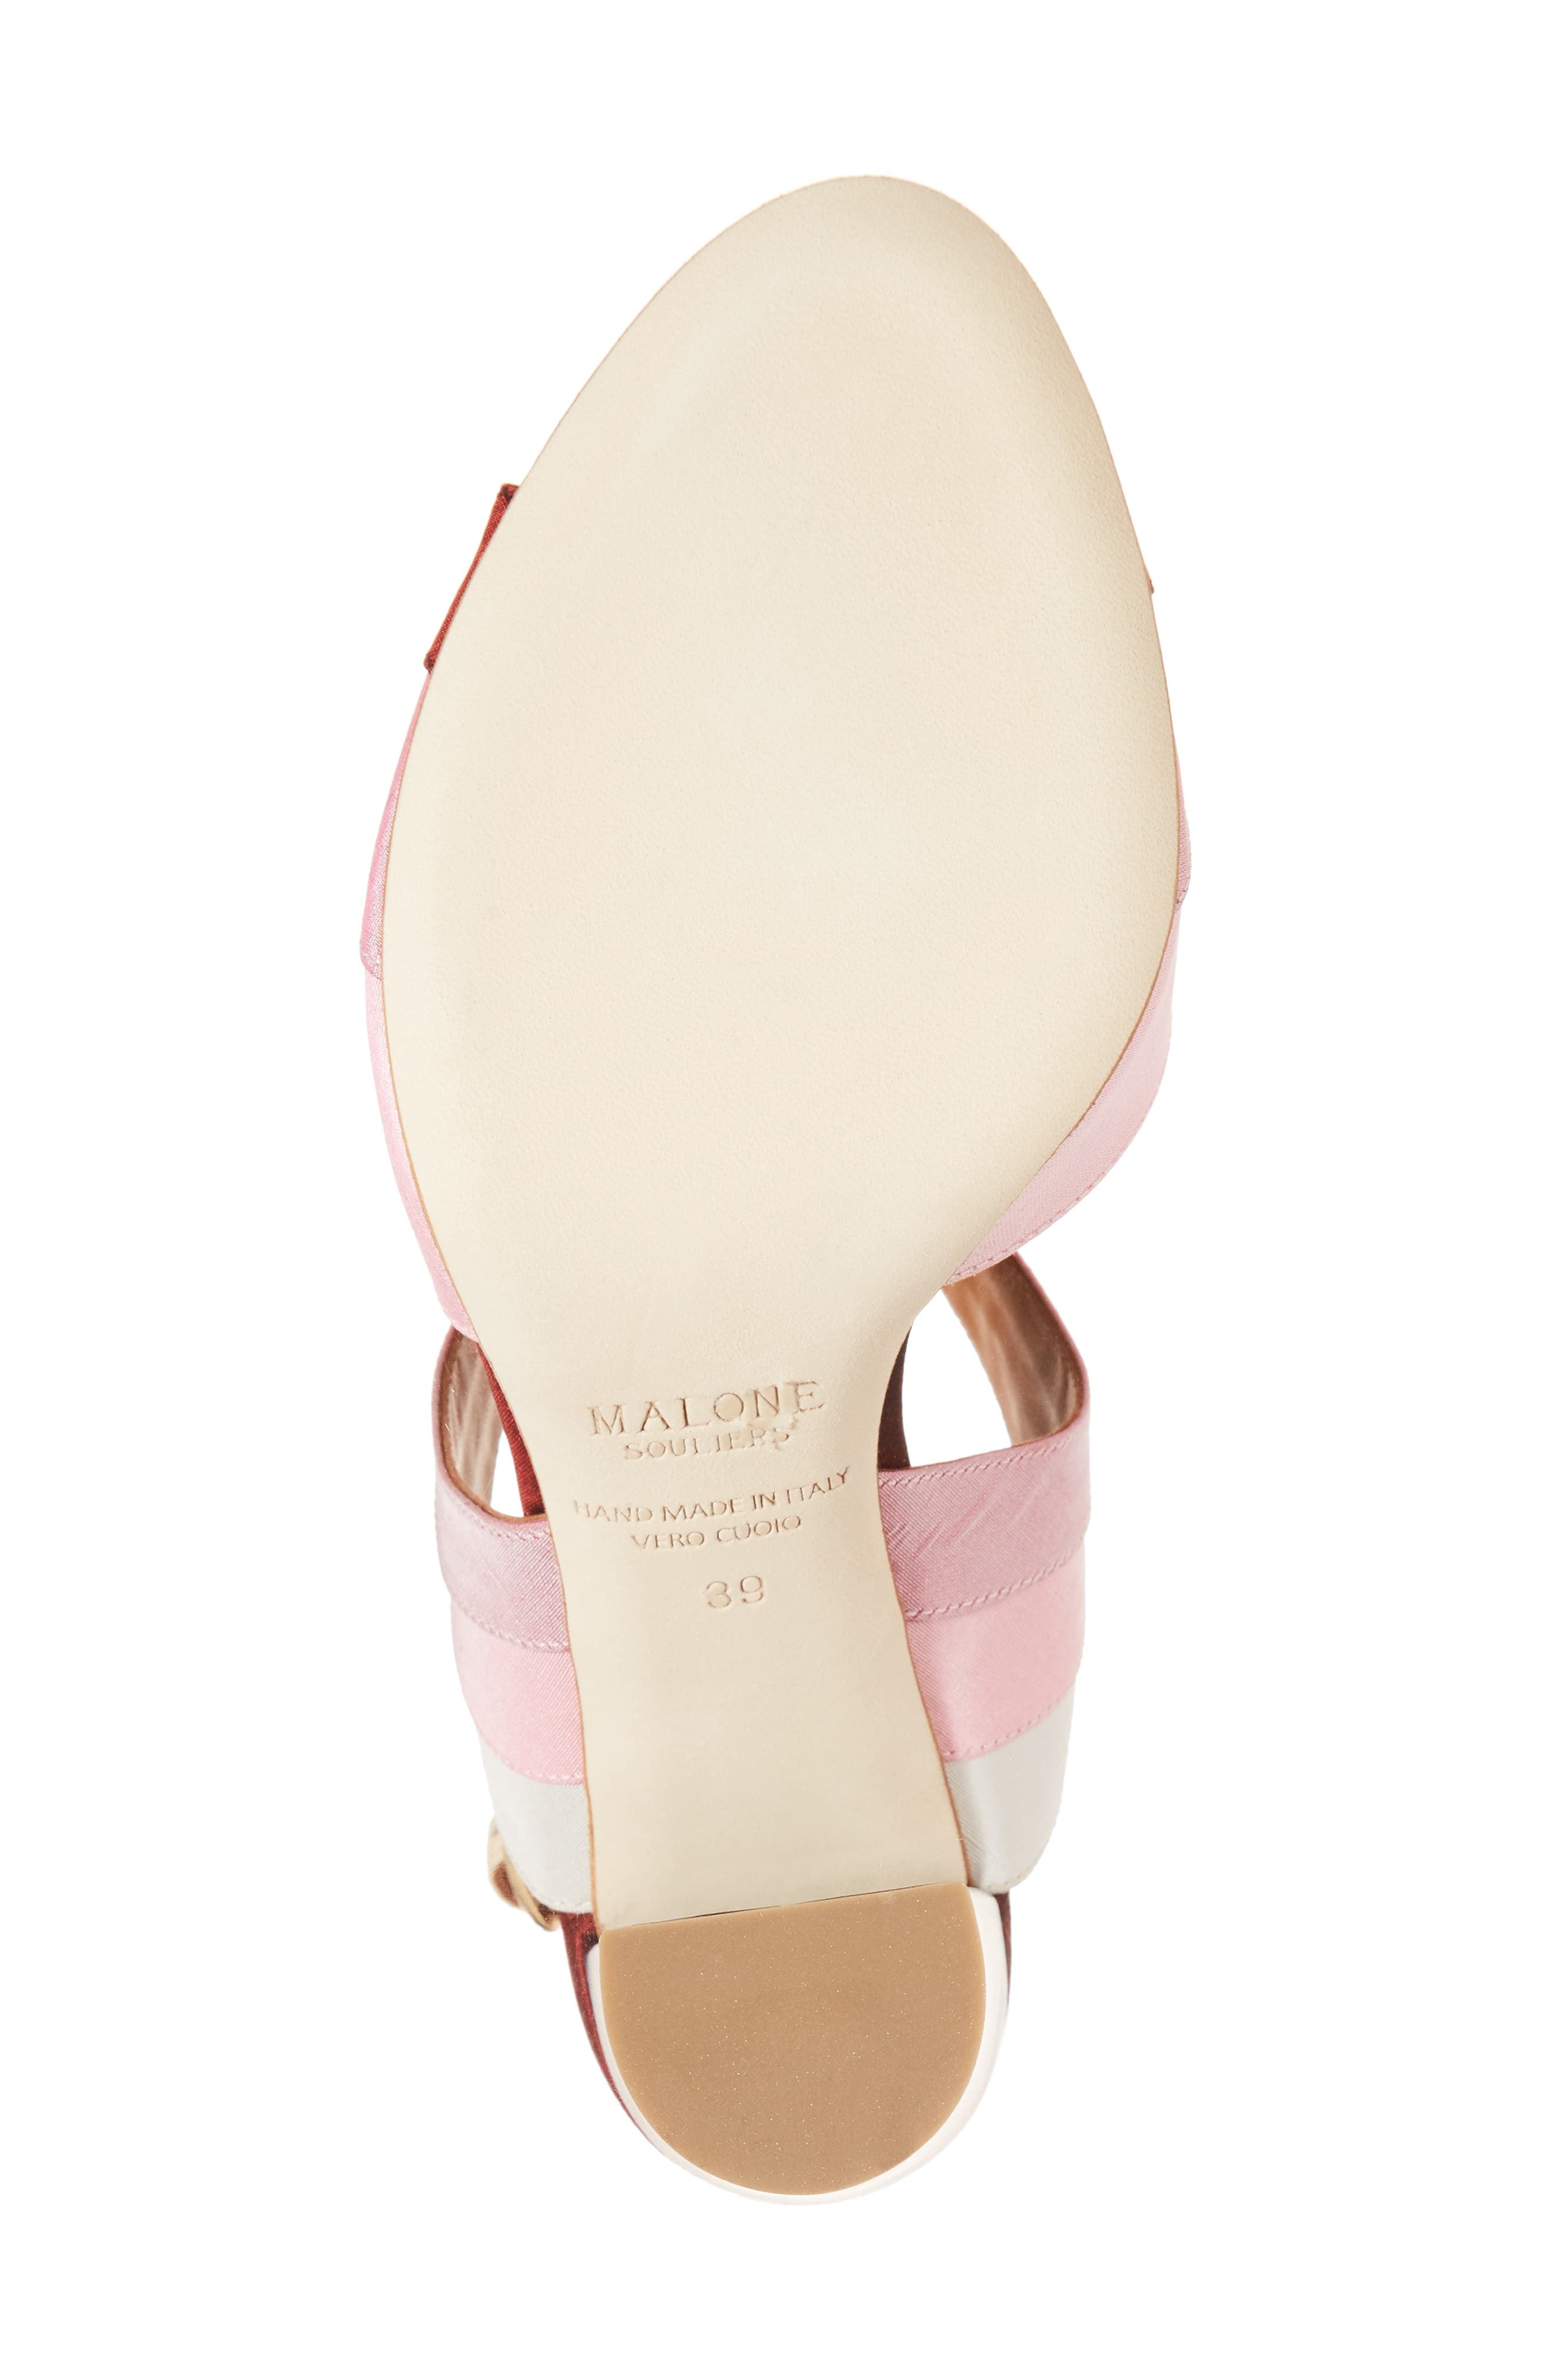 Anita Ombré Slingback Sandal,                             Alternate thumbnail 6, color,                             Peach/ Rose/ Berry/ Wine